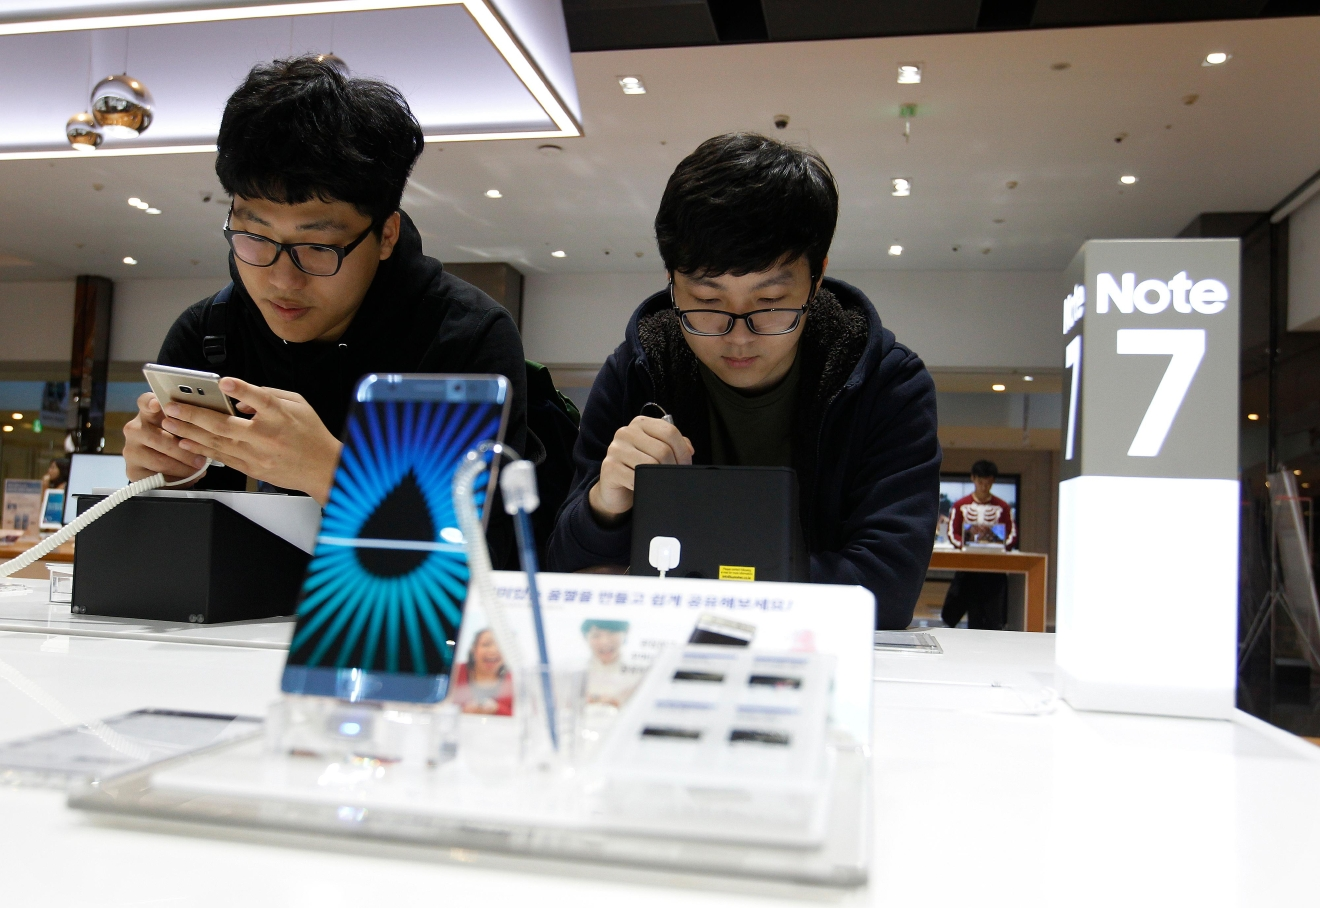 South Korean high school students try out Samsung Electronics Galaxy Note 7 smartphones at the company's shop in Seoul in Seoul, South Korea, Monday, Oct. 10, 2016. Samsung Electronics has temporarily halted production of its Galaxy Note 7 smartphones, South Korea's Yonhap news agency reported Monday, following reports that replacements for the fire-prone phones were also overheating. (AP Photo/Ahn Young-joon)